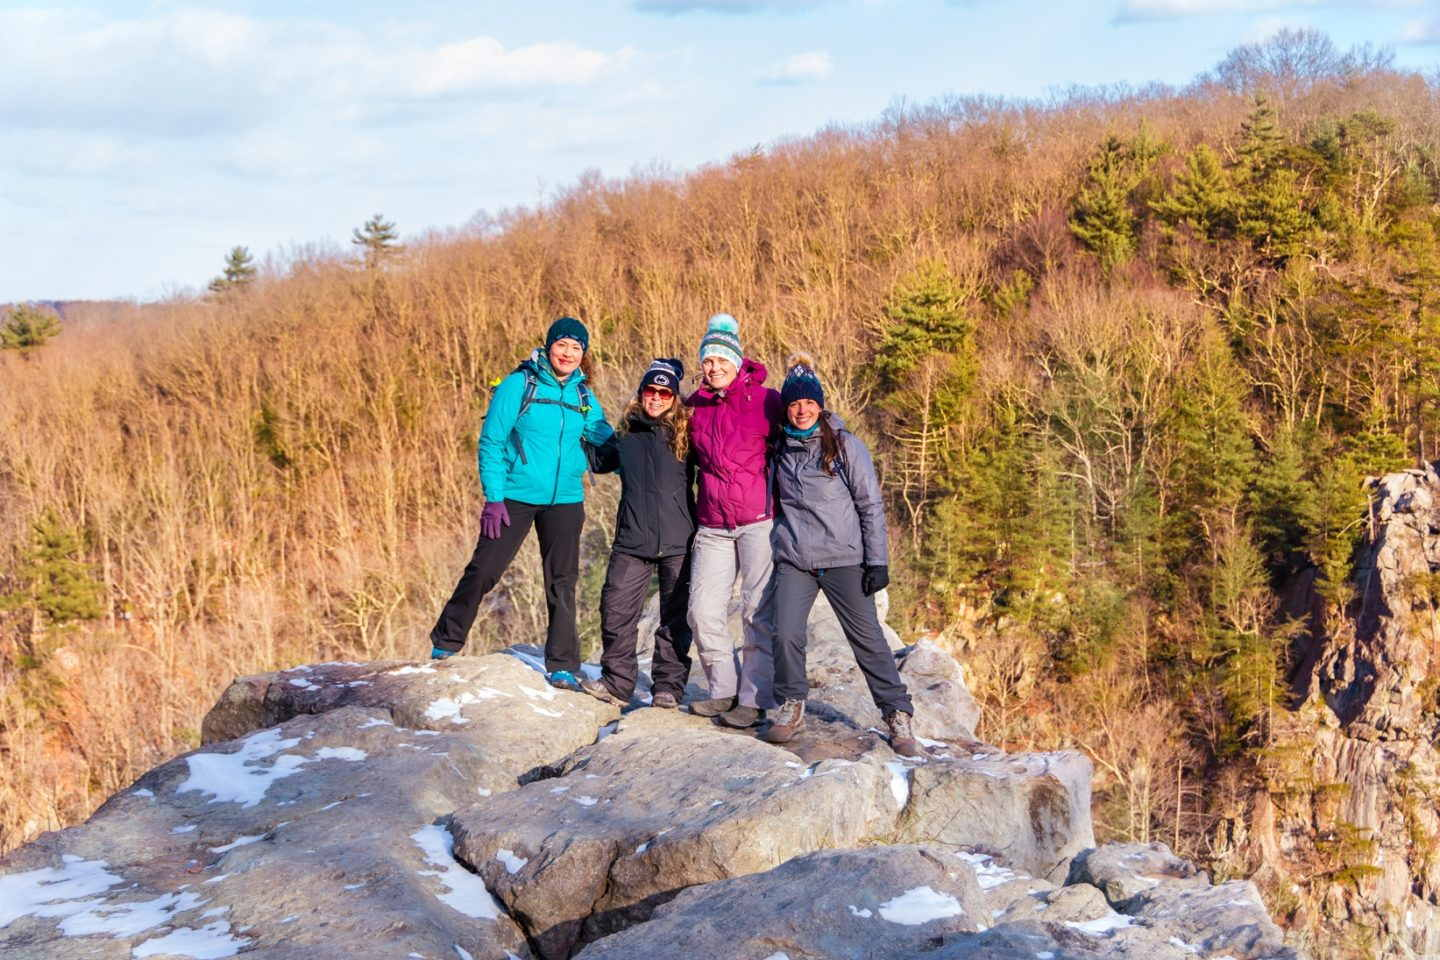 What Types of Clothing to Wear Hiking?